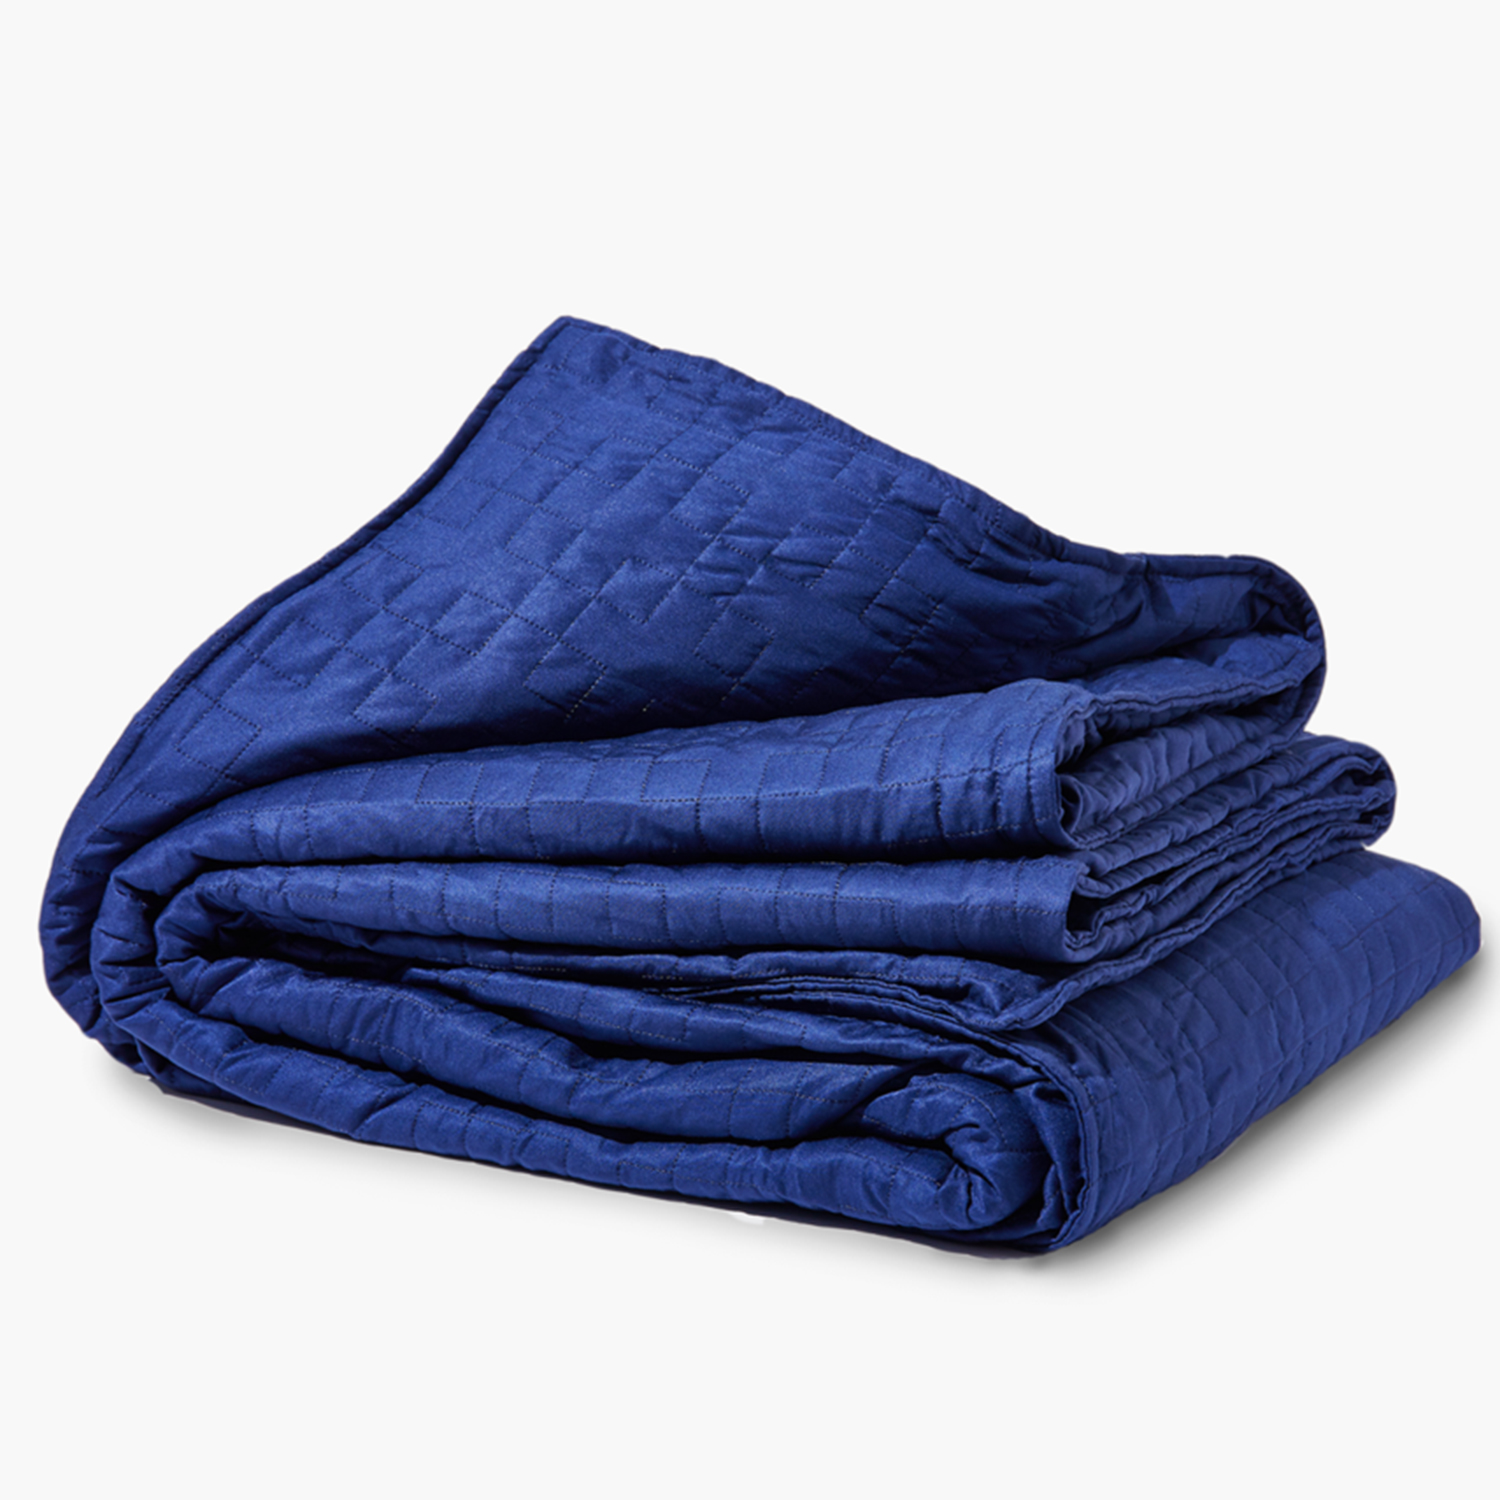 8 Best Cooling Weighted Blankets Of 2020 According To Reviews Real Simple